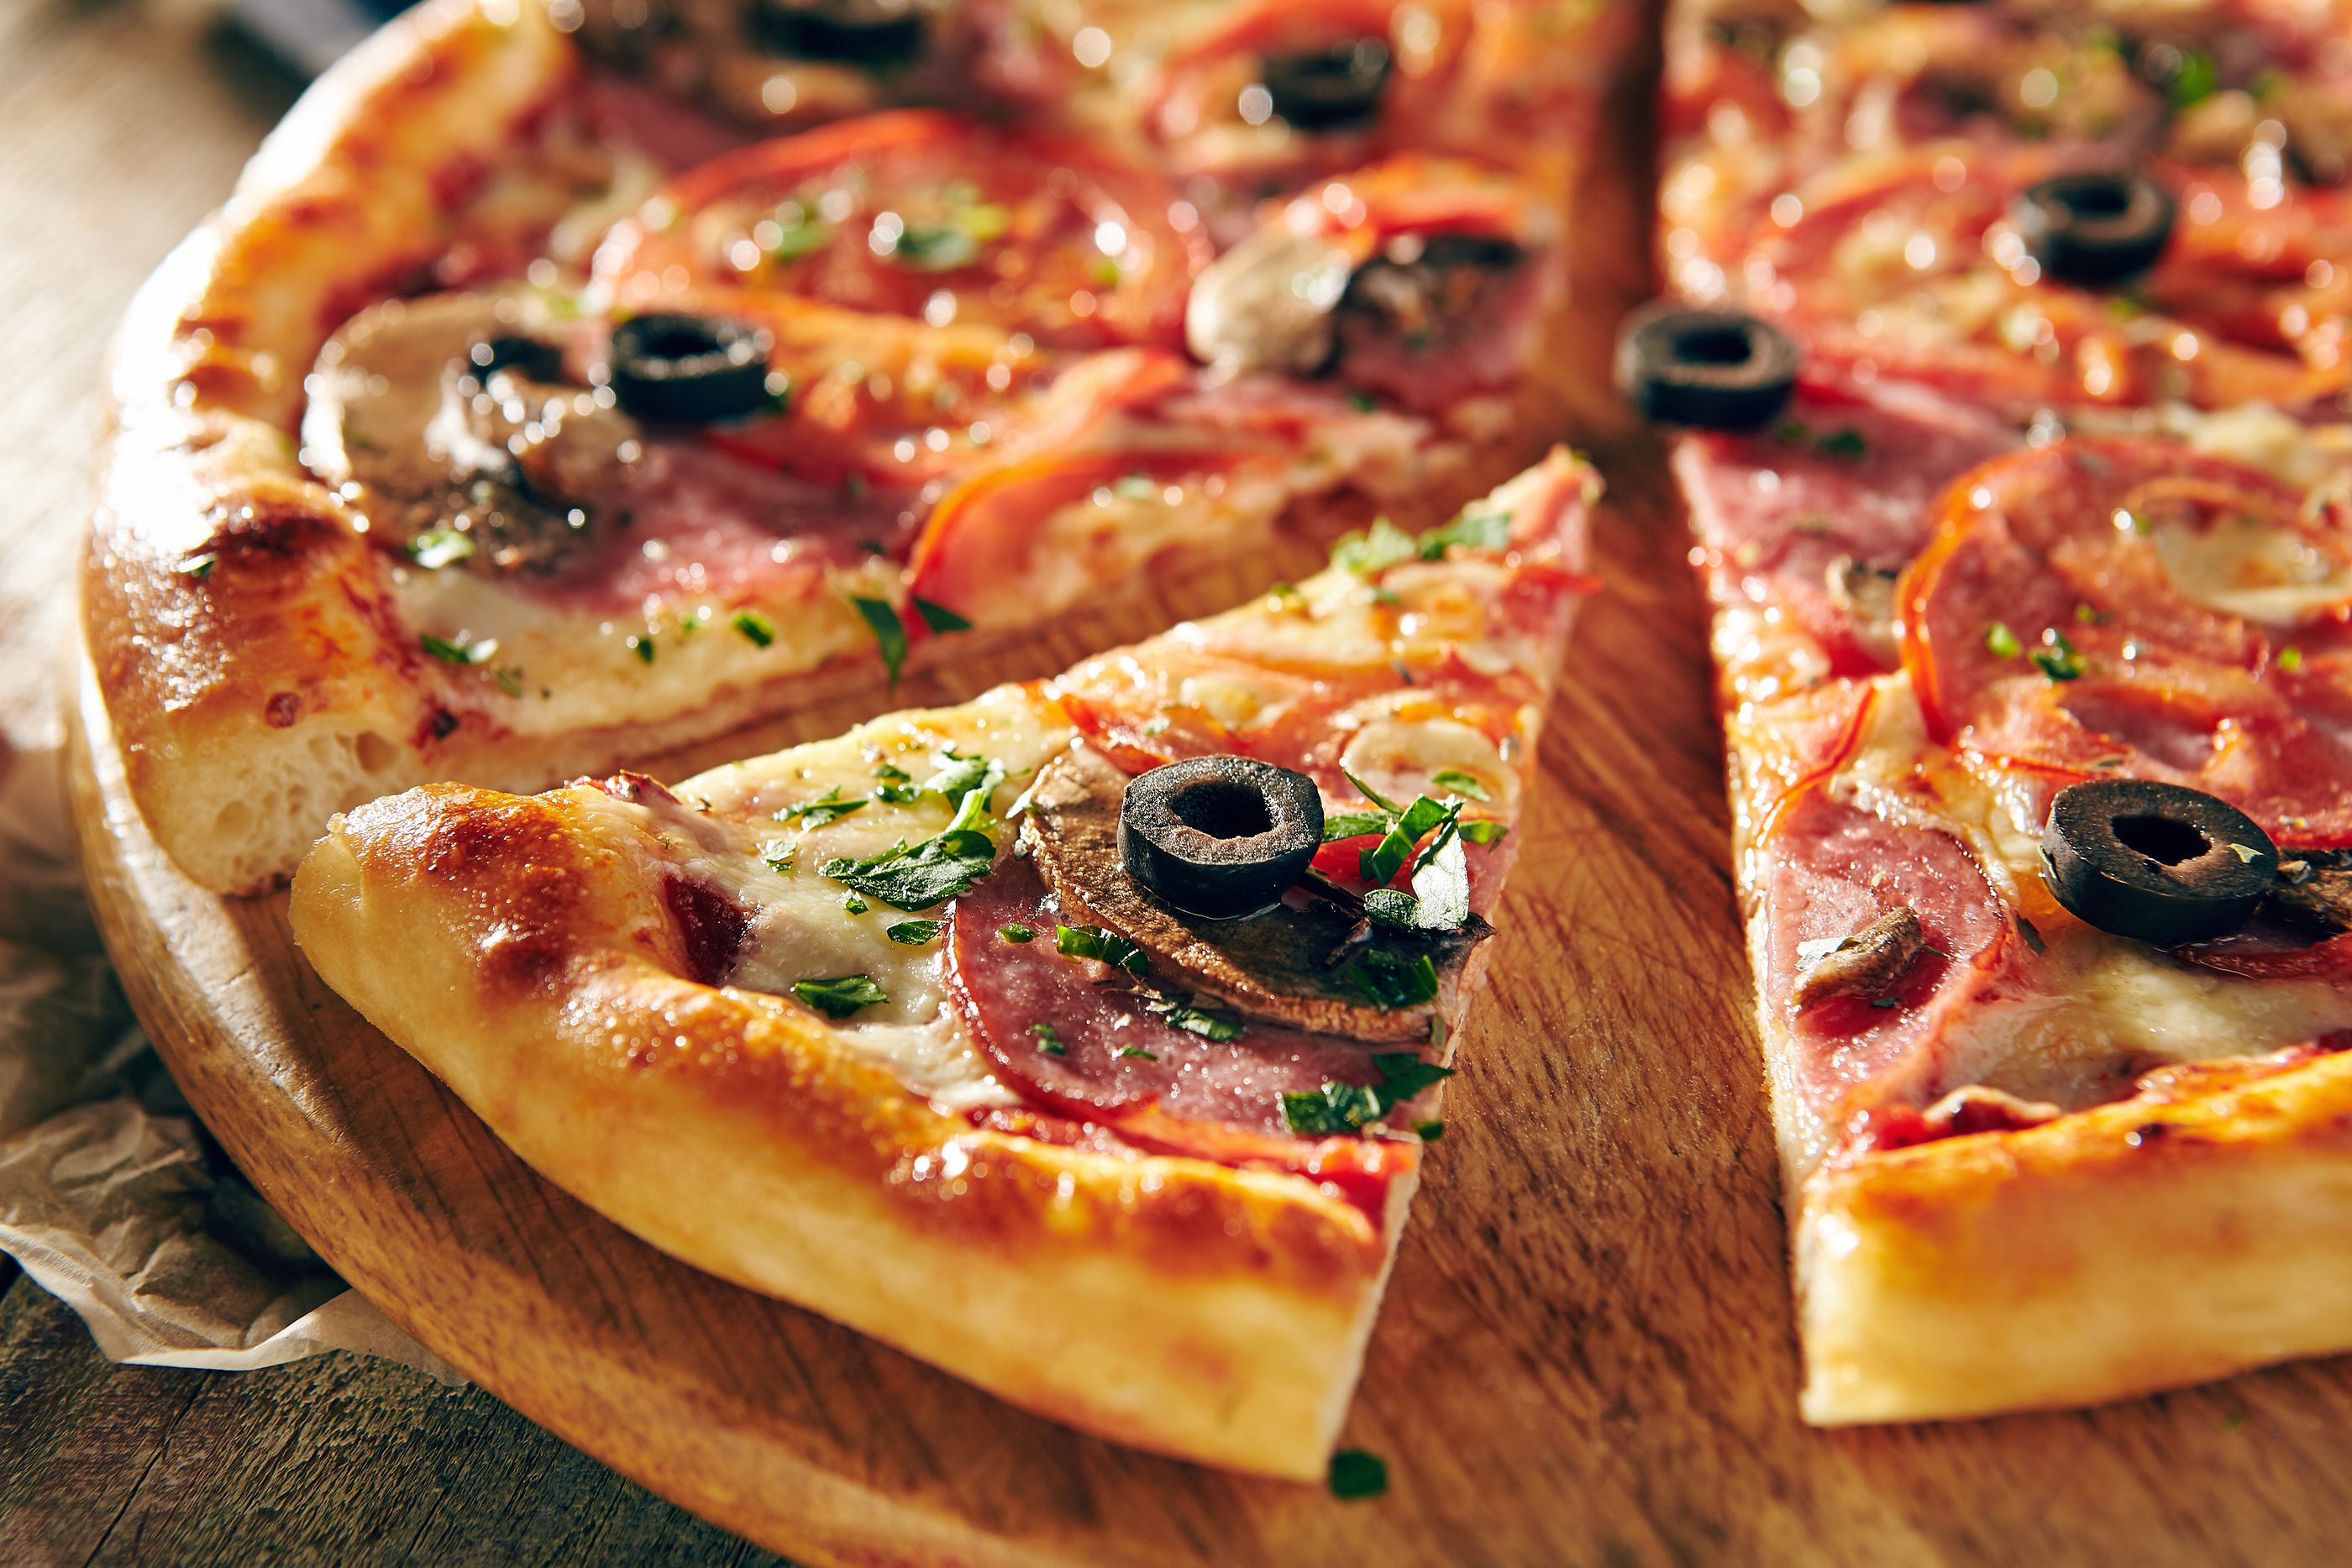 Pizza Restaurant Menu - Delicious Fresh Pizza with Sausages, Tom